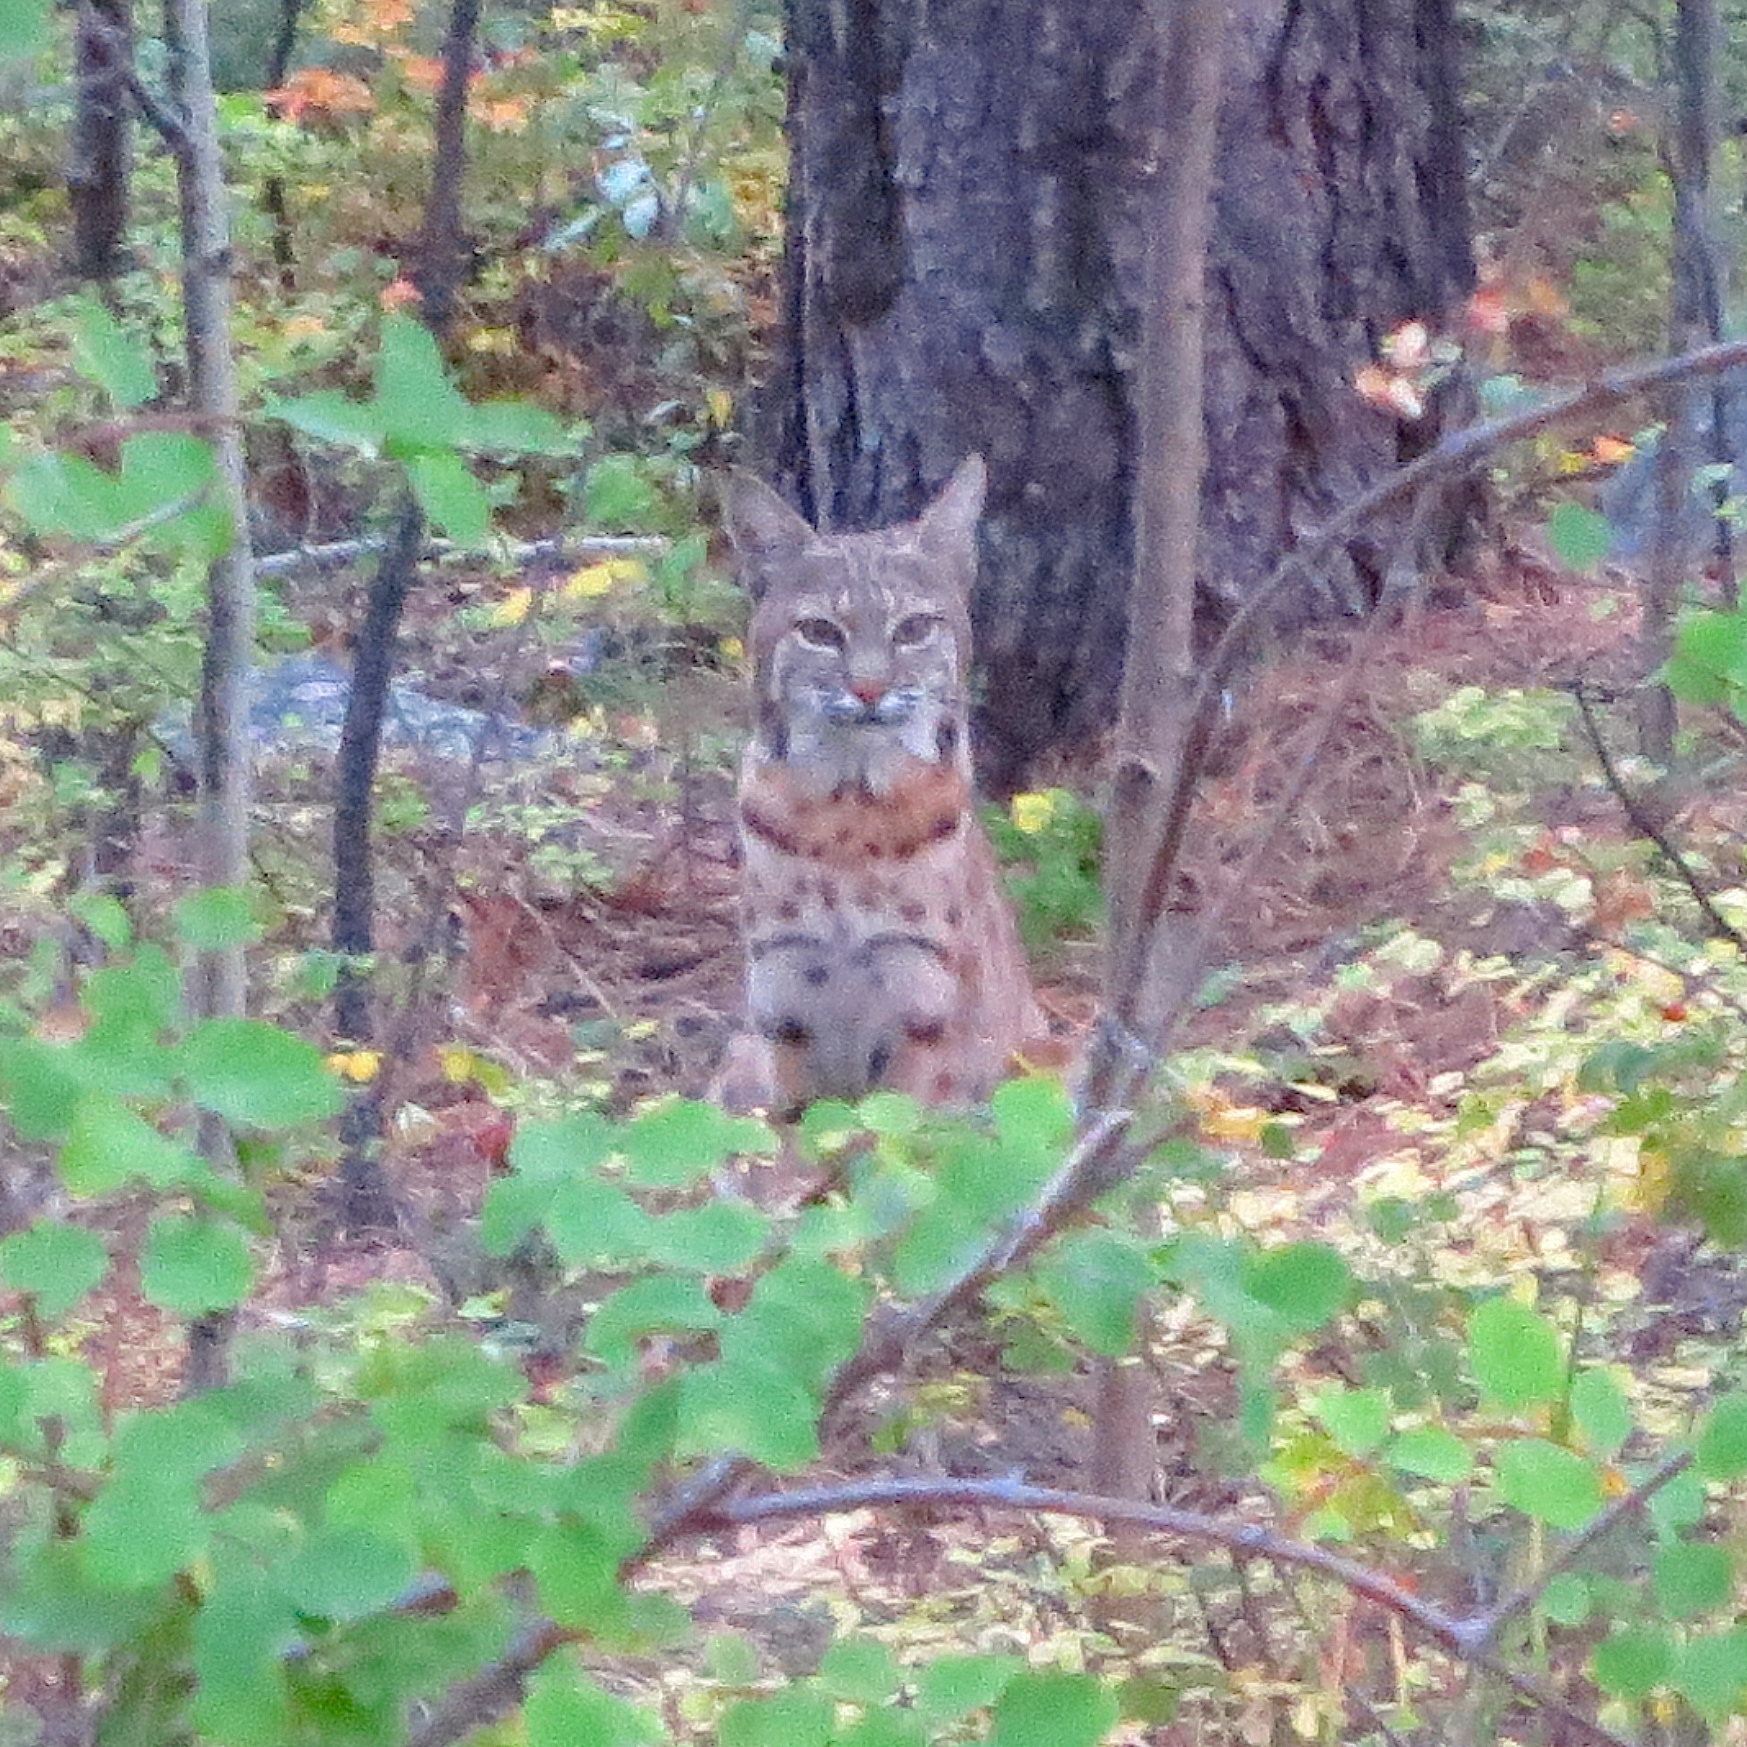 While heading to camp for the night near Salida, we spotted this bobcat crossing the road. He sat, 30 feet off the road, for a good five minutes and watched us watching him. Sandhya and I both took some photos - this was the best one, given the low light and heavy cropping. (Photo by Sandhya Tillotson)